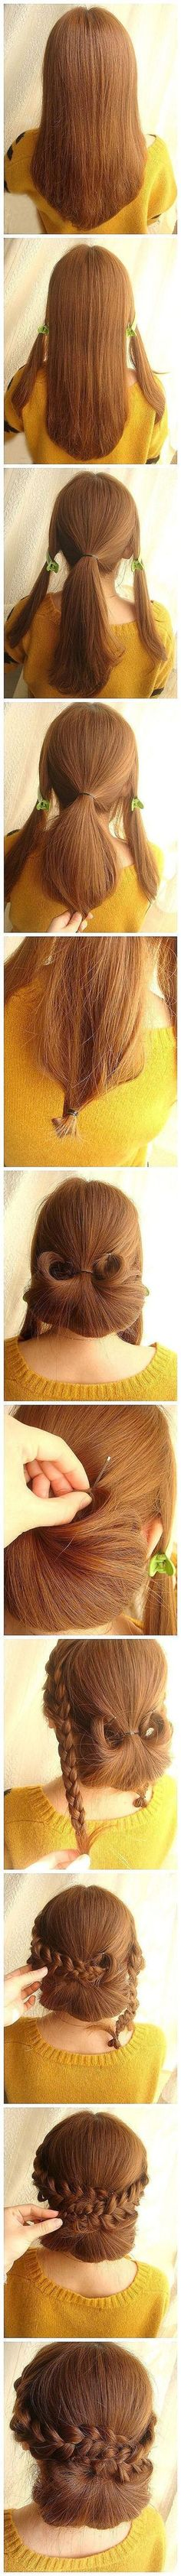 17 Ways to Make the Vintage Hairstyles - Pretty Designs